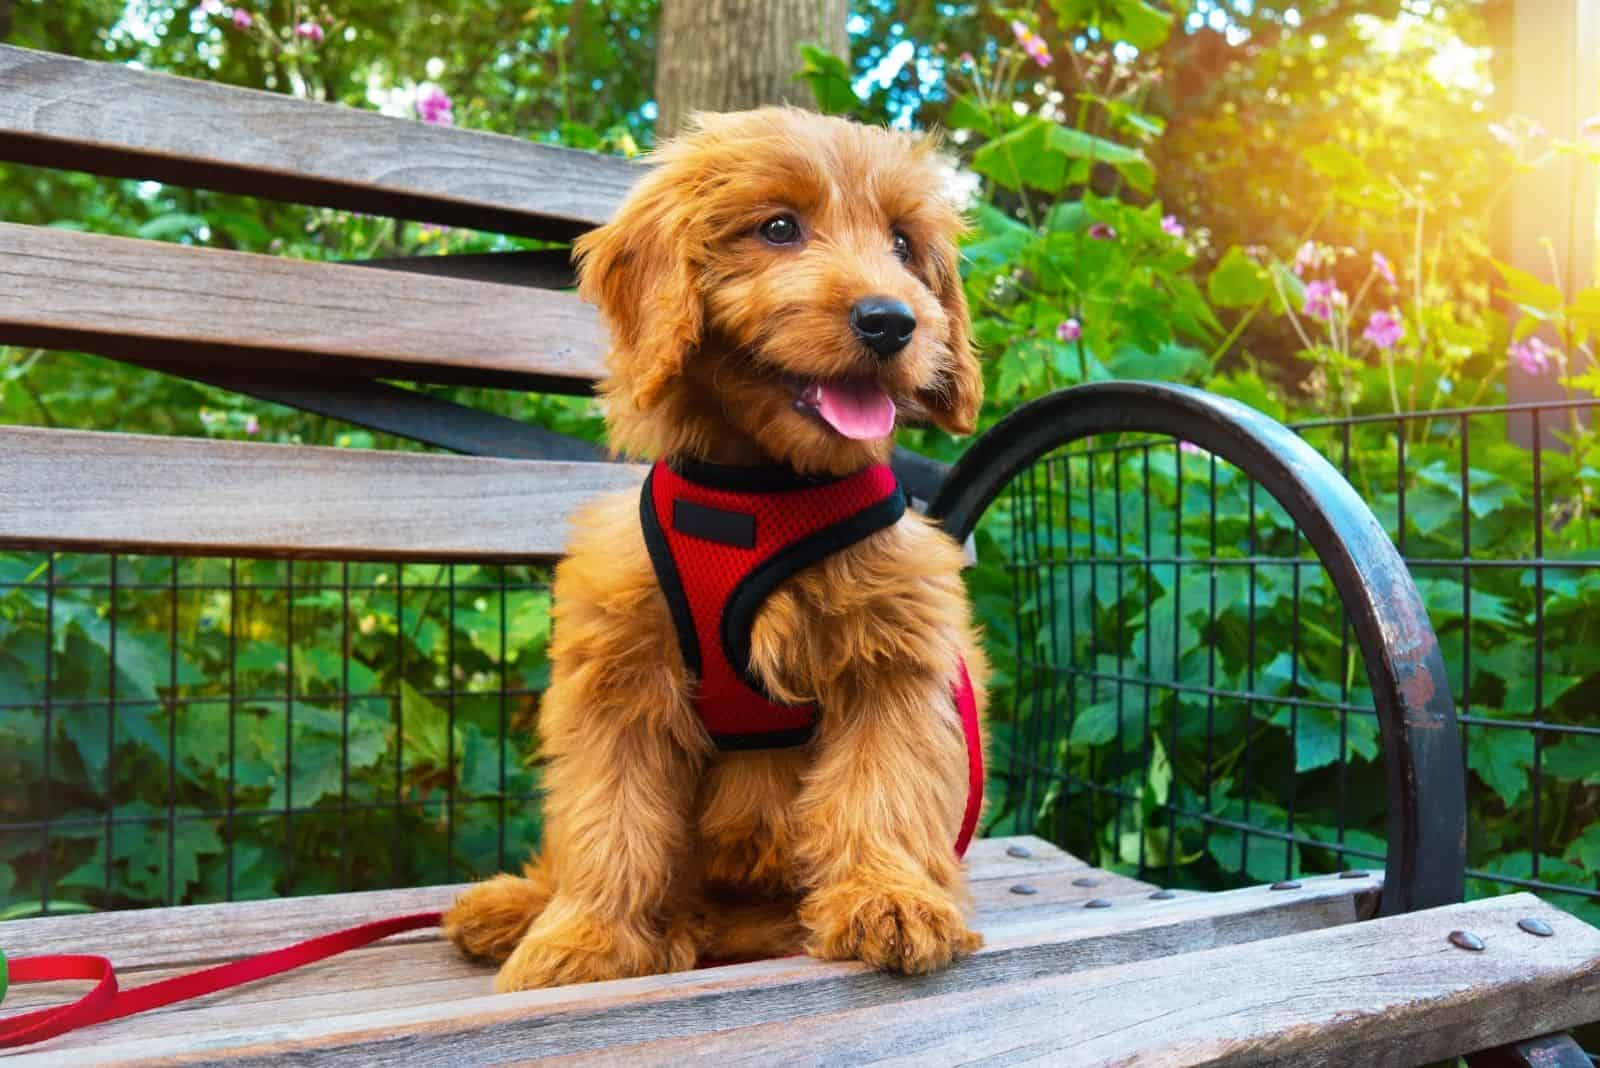 miniature goldendoodle sitting in the bench outdoors